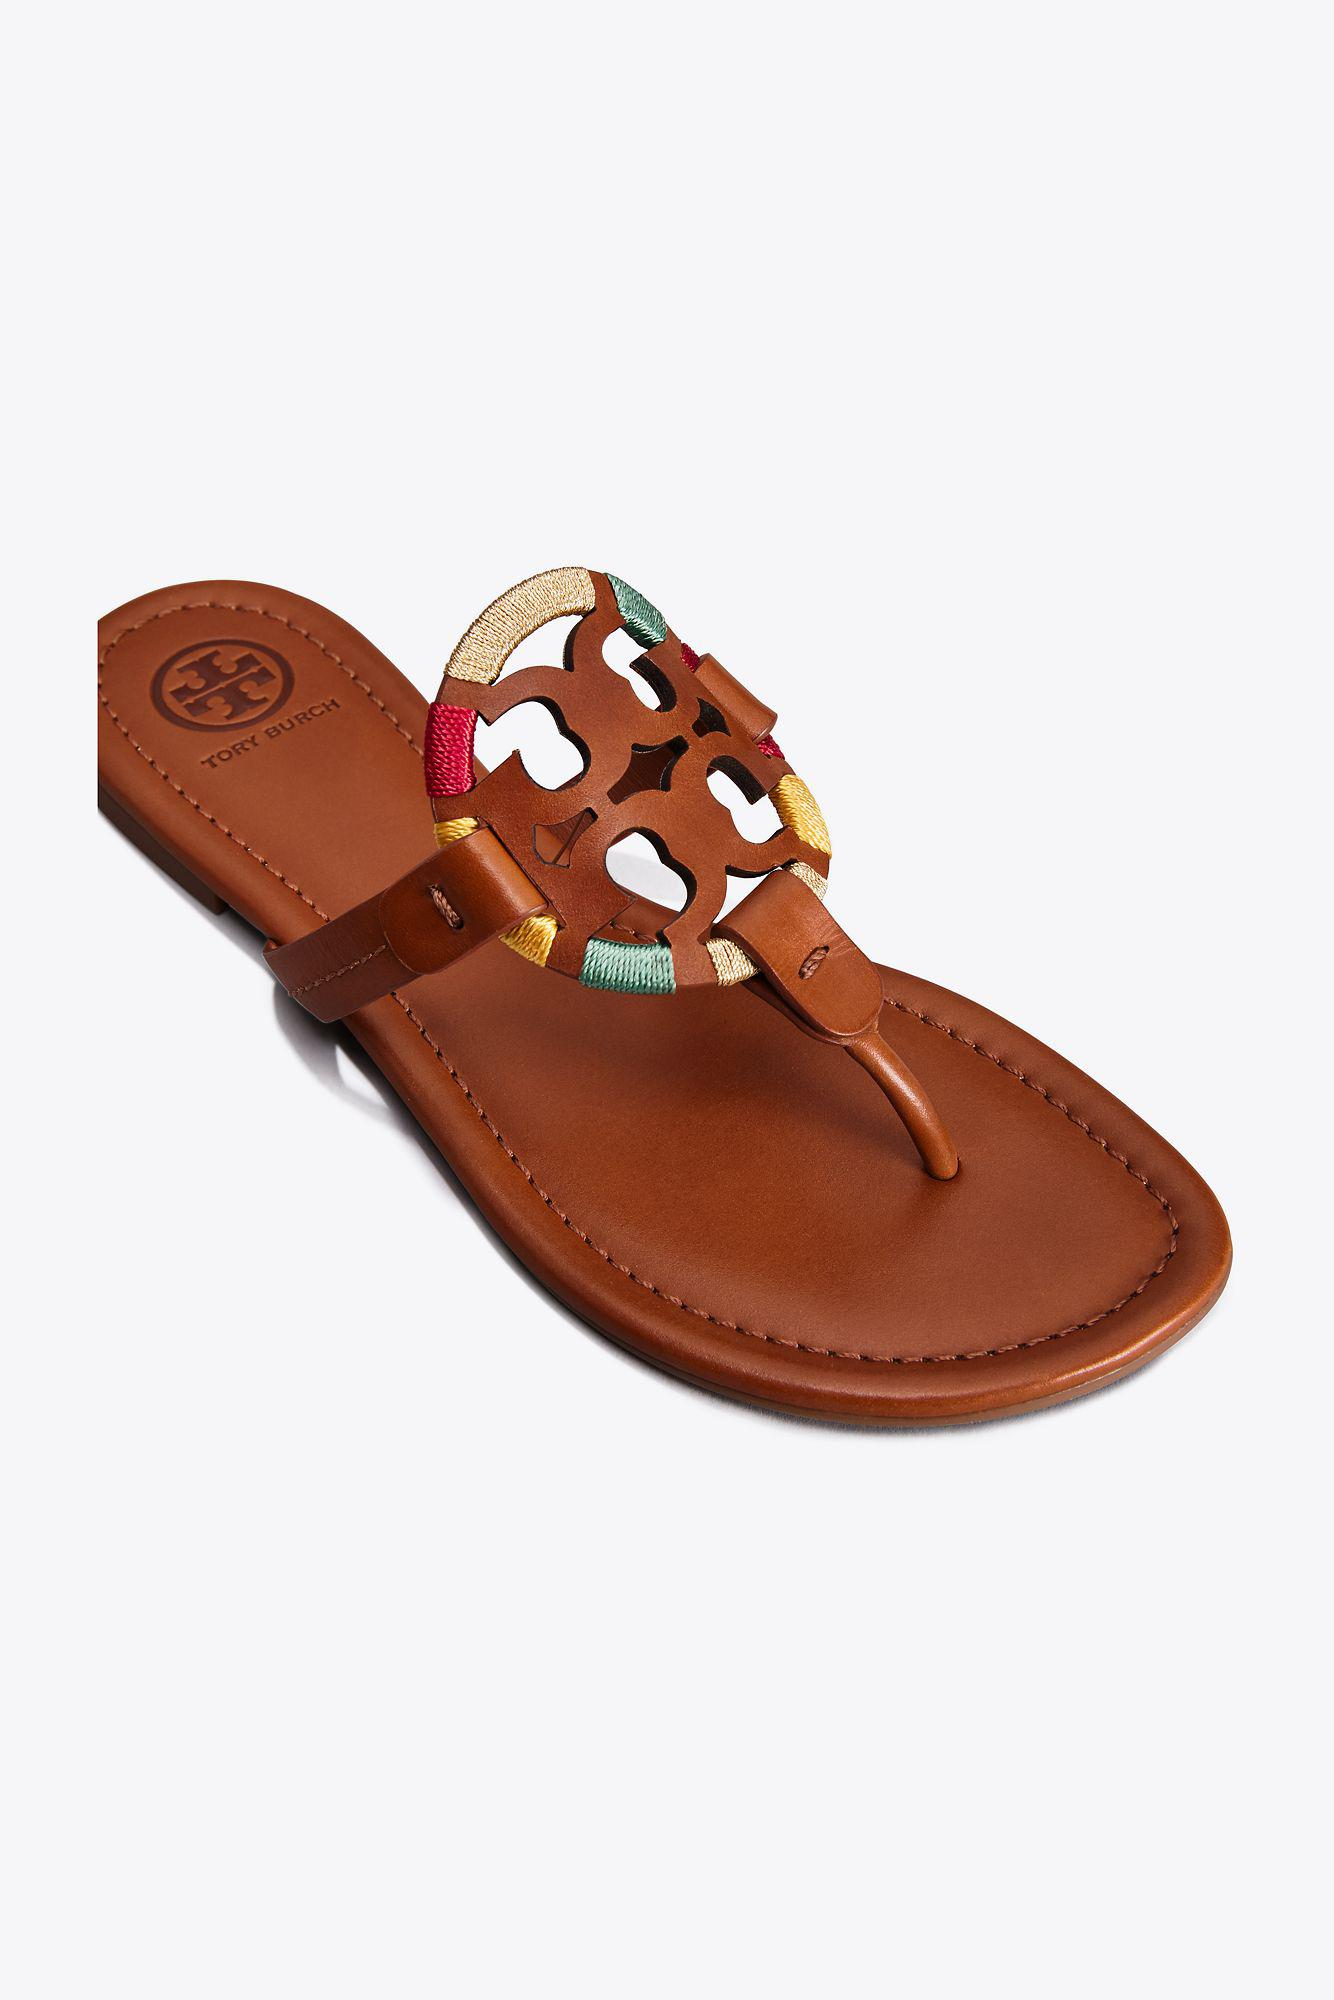 d73a318e2be7e Lyst - Tory Burch Miller Embroidered Sandal